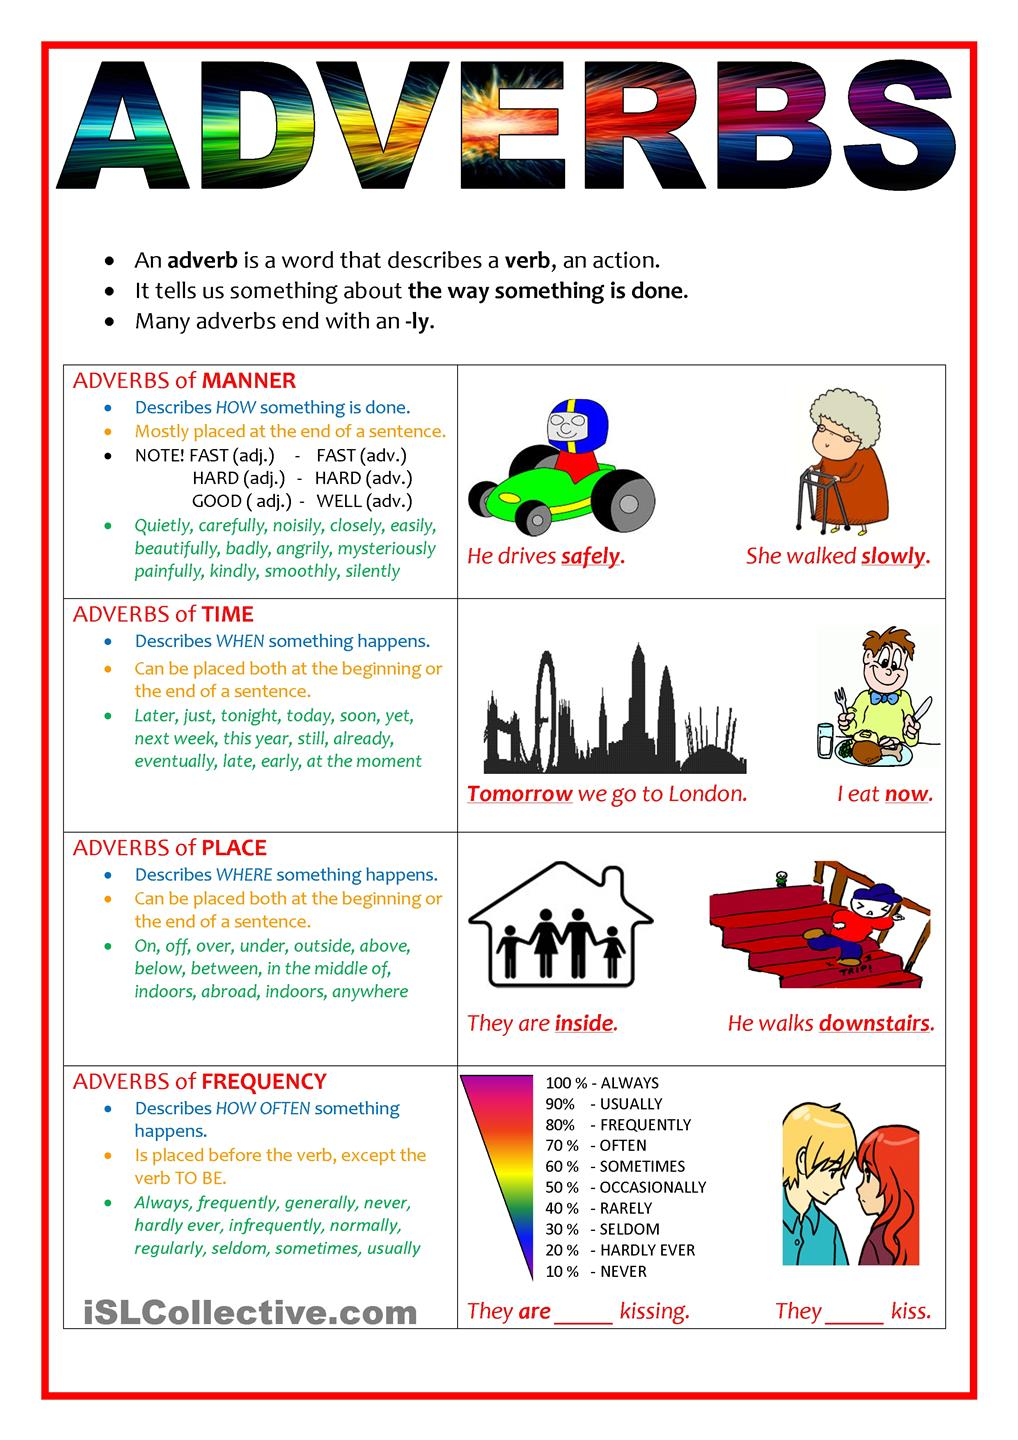 adverbs_of_manner_time_place_and_frequency